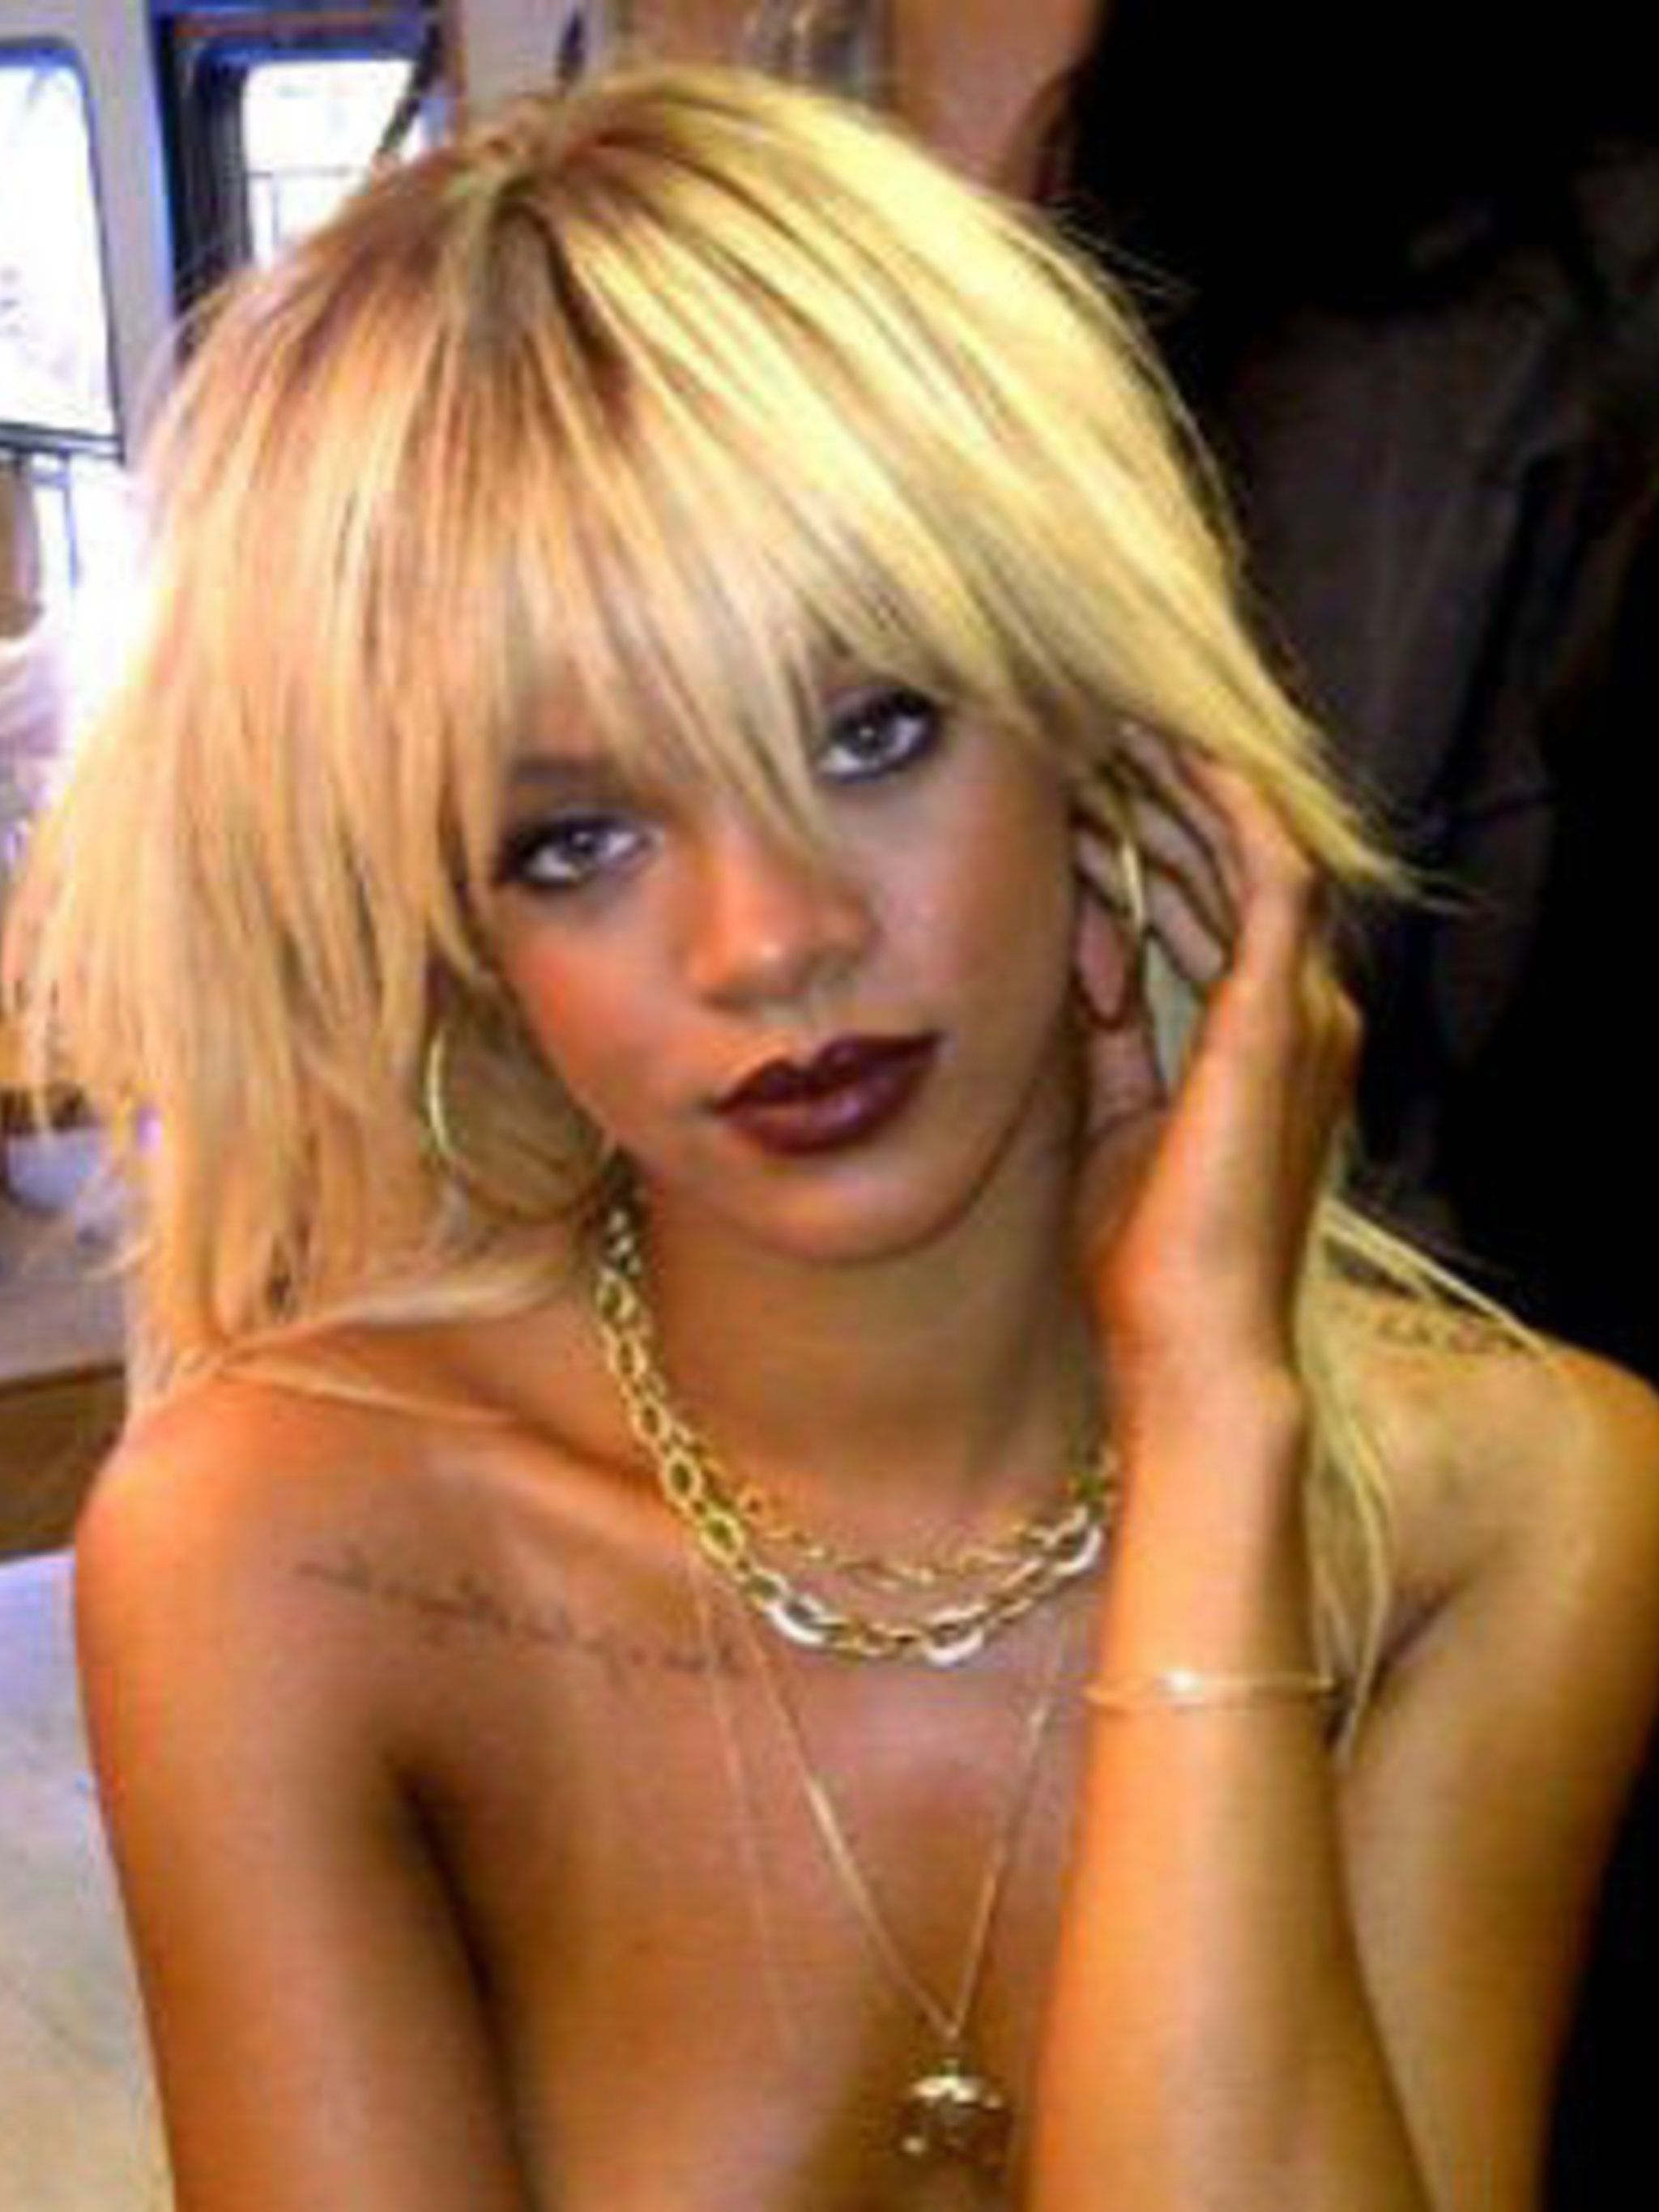 <p>The twit pic Rihanna posted of her new blonde hair on her Twitter account @rihanna</p>